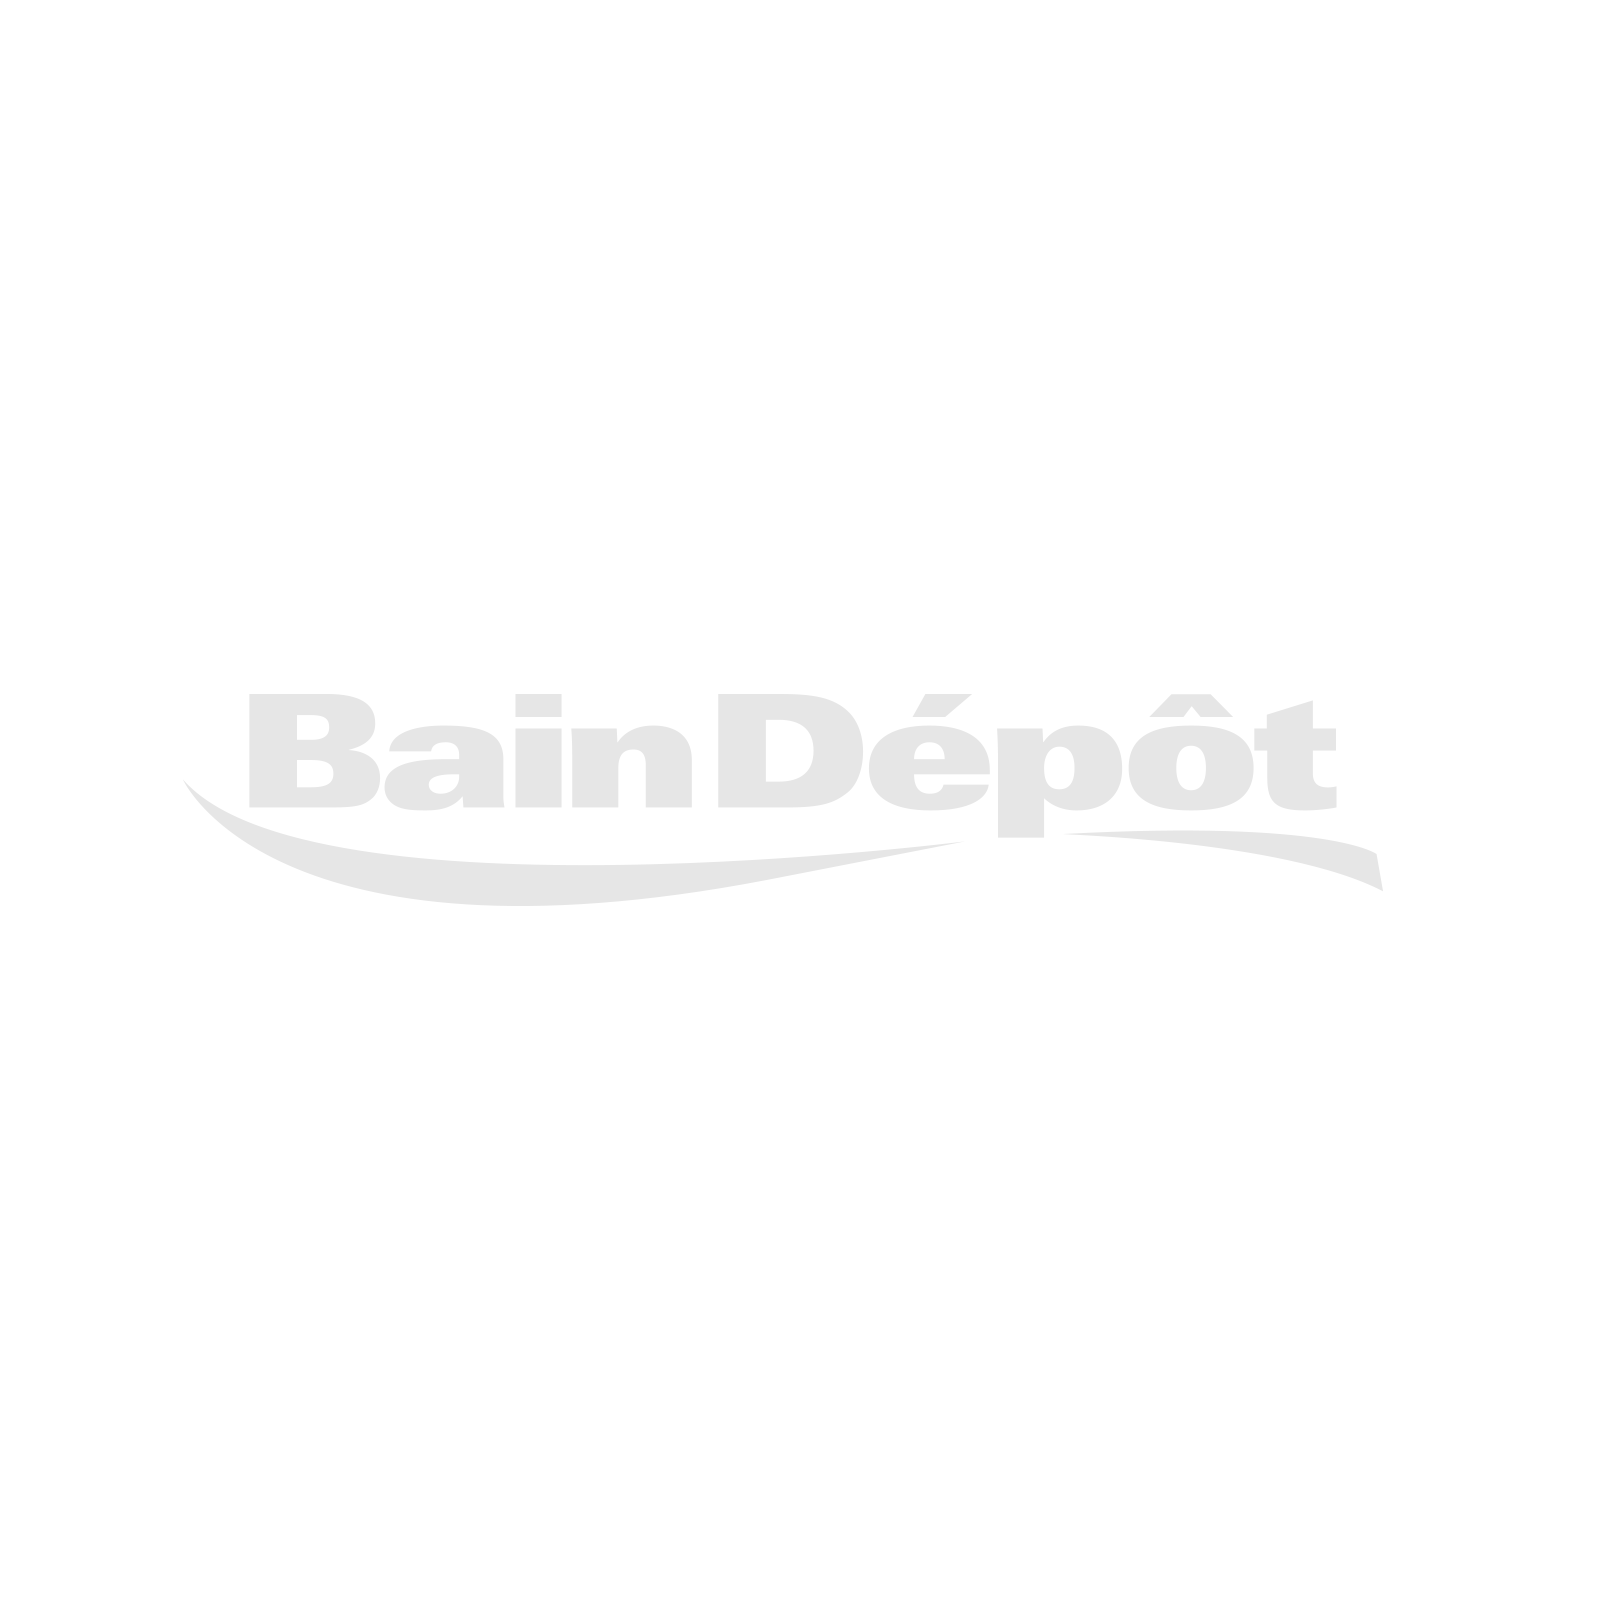 Rounded brushed nickel tub-shower faucet with rain showerhead